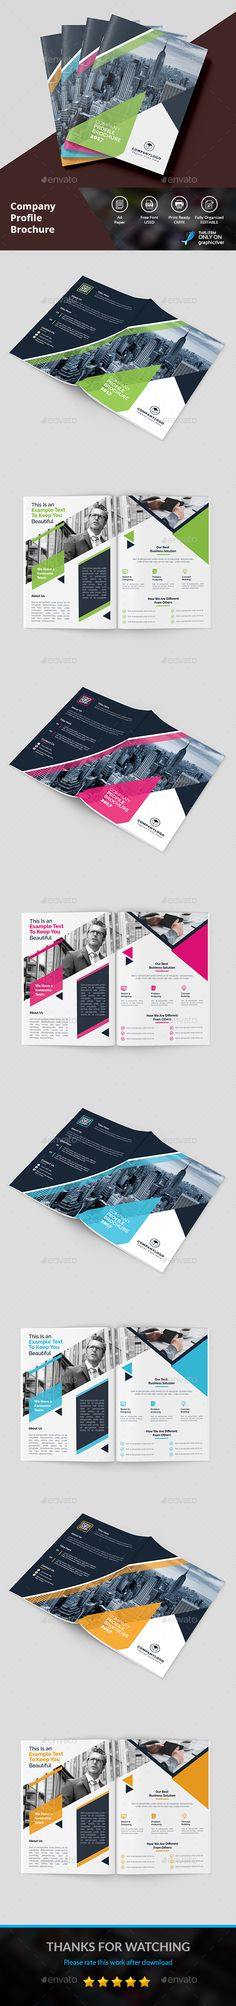 Profile Brochure - #Brochures Print #Templates Download here: https://graphicriver.net/item/profile-brochure/19343826?ref=alena994